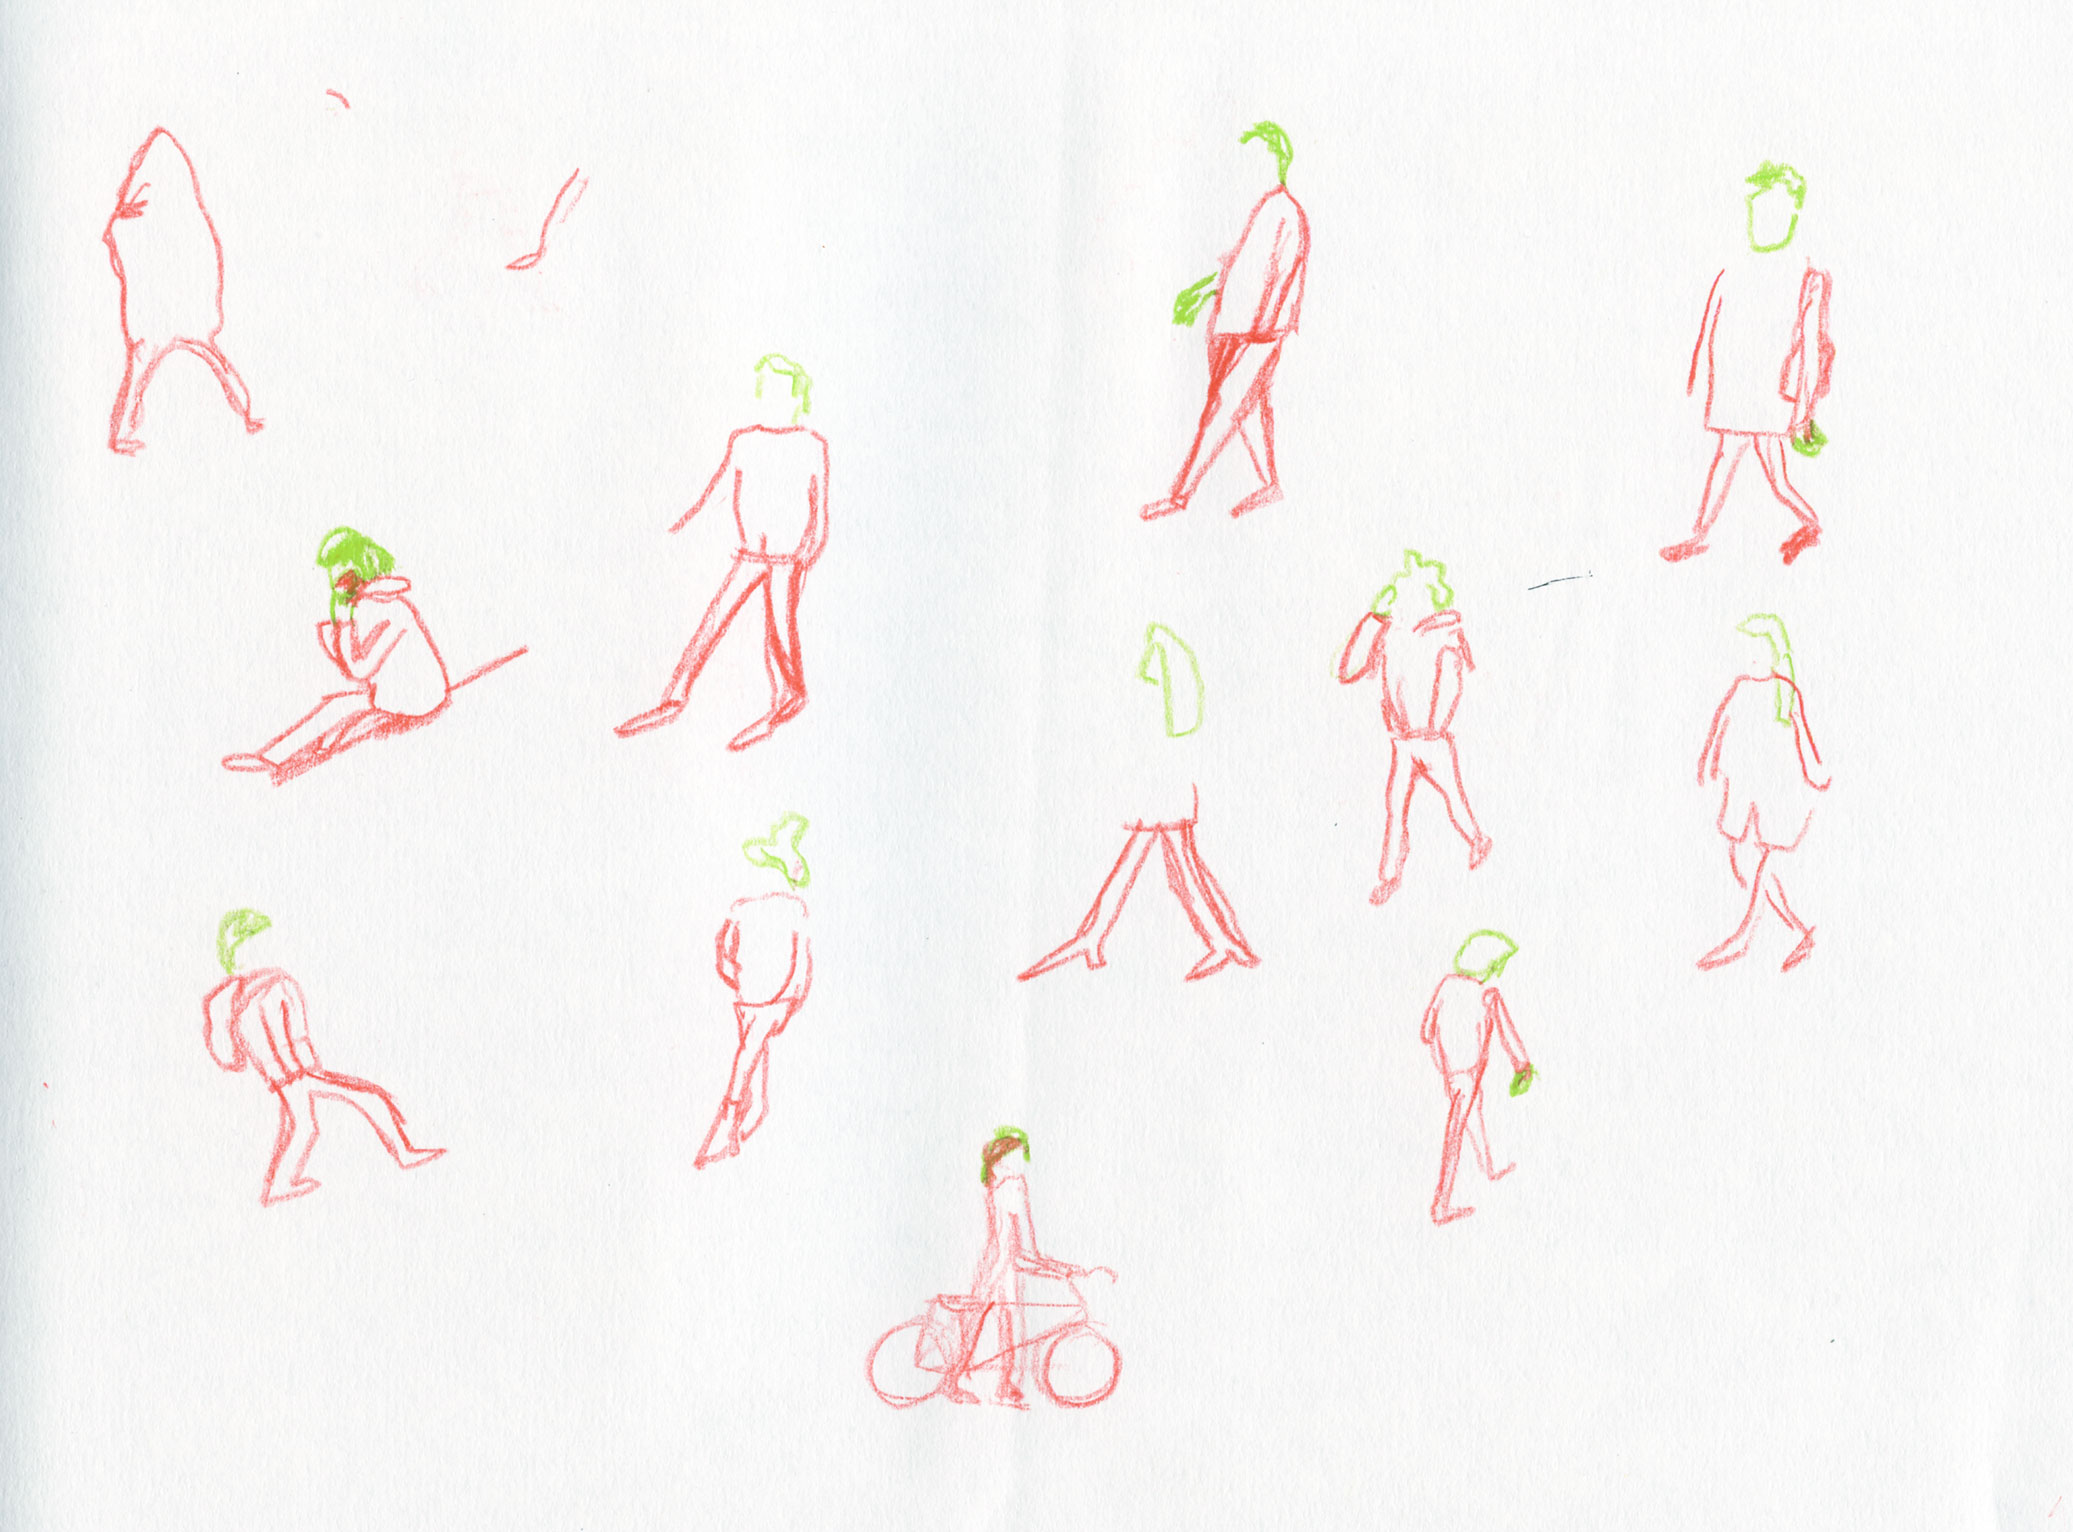 early-sketch-people-walking